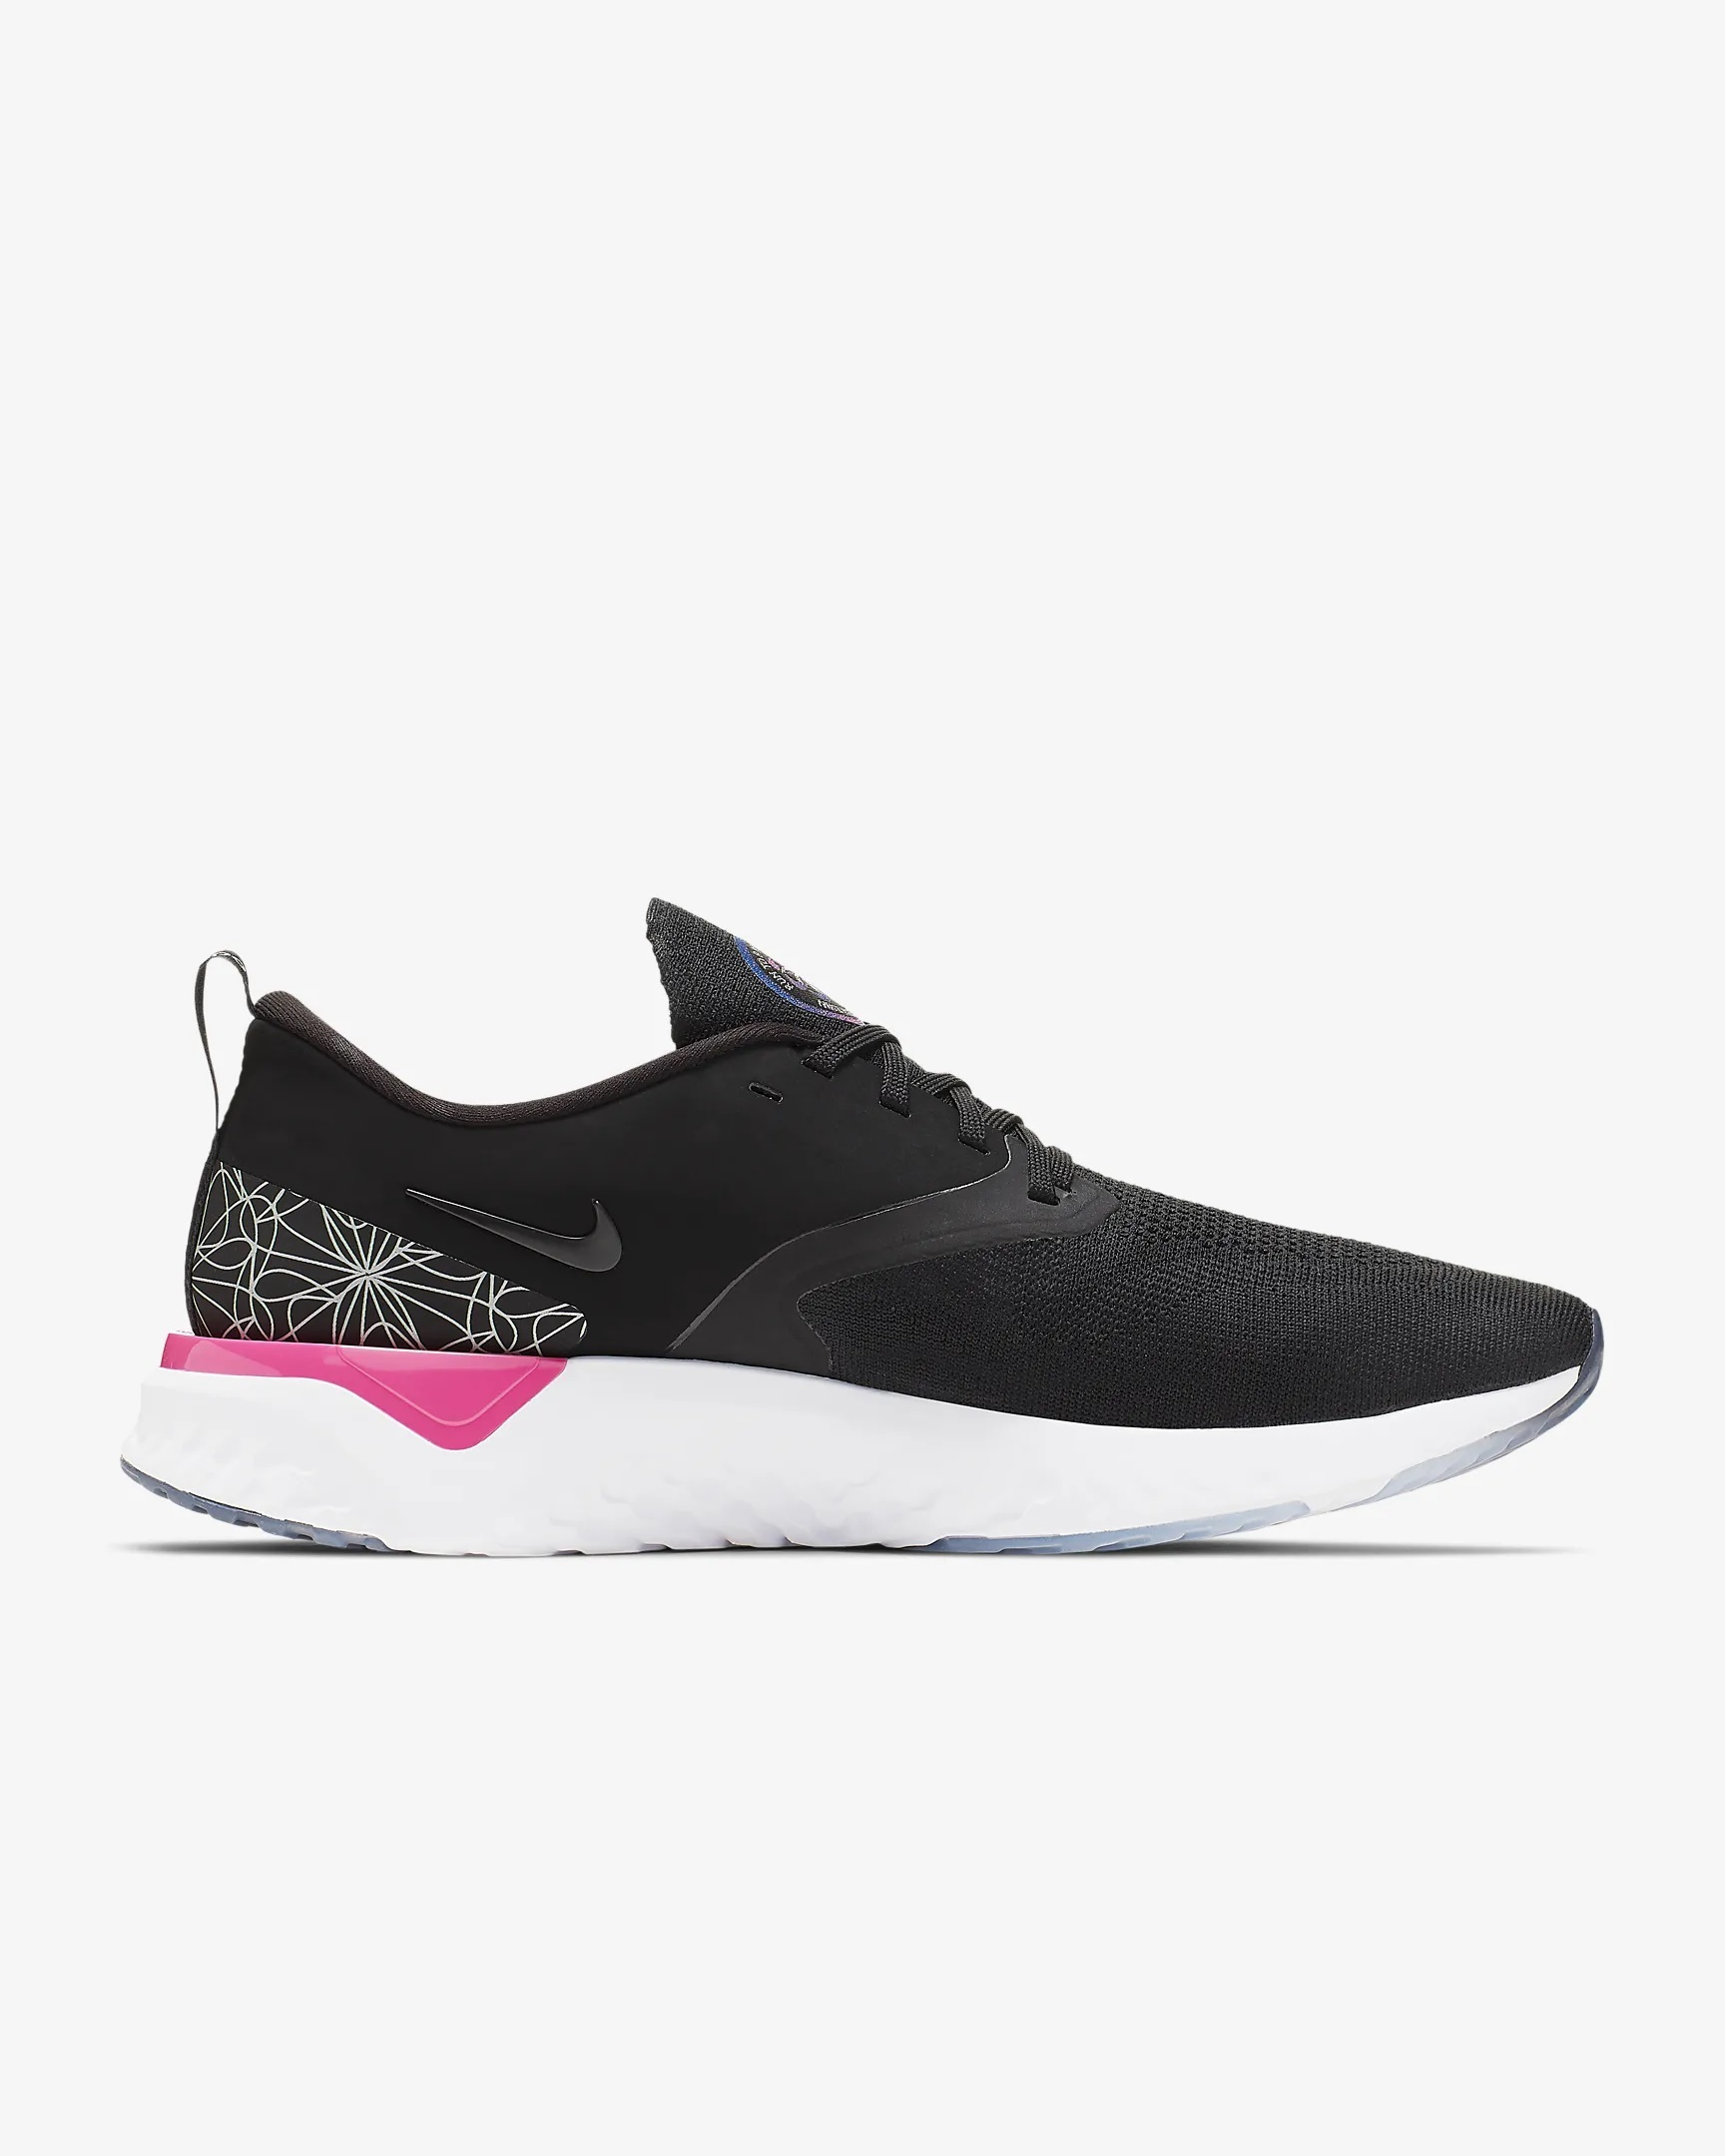 c5d0b0450a02 Nike Odyssey React Flyknit 2 (Run-to-a-magical-place) – MyHotspotStore